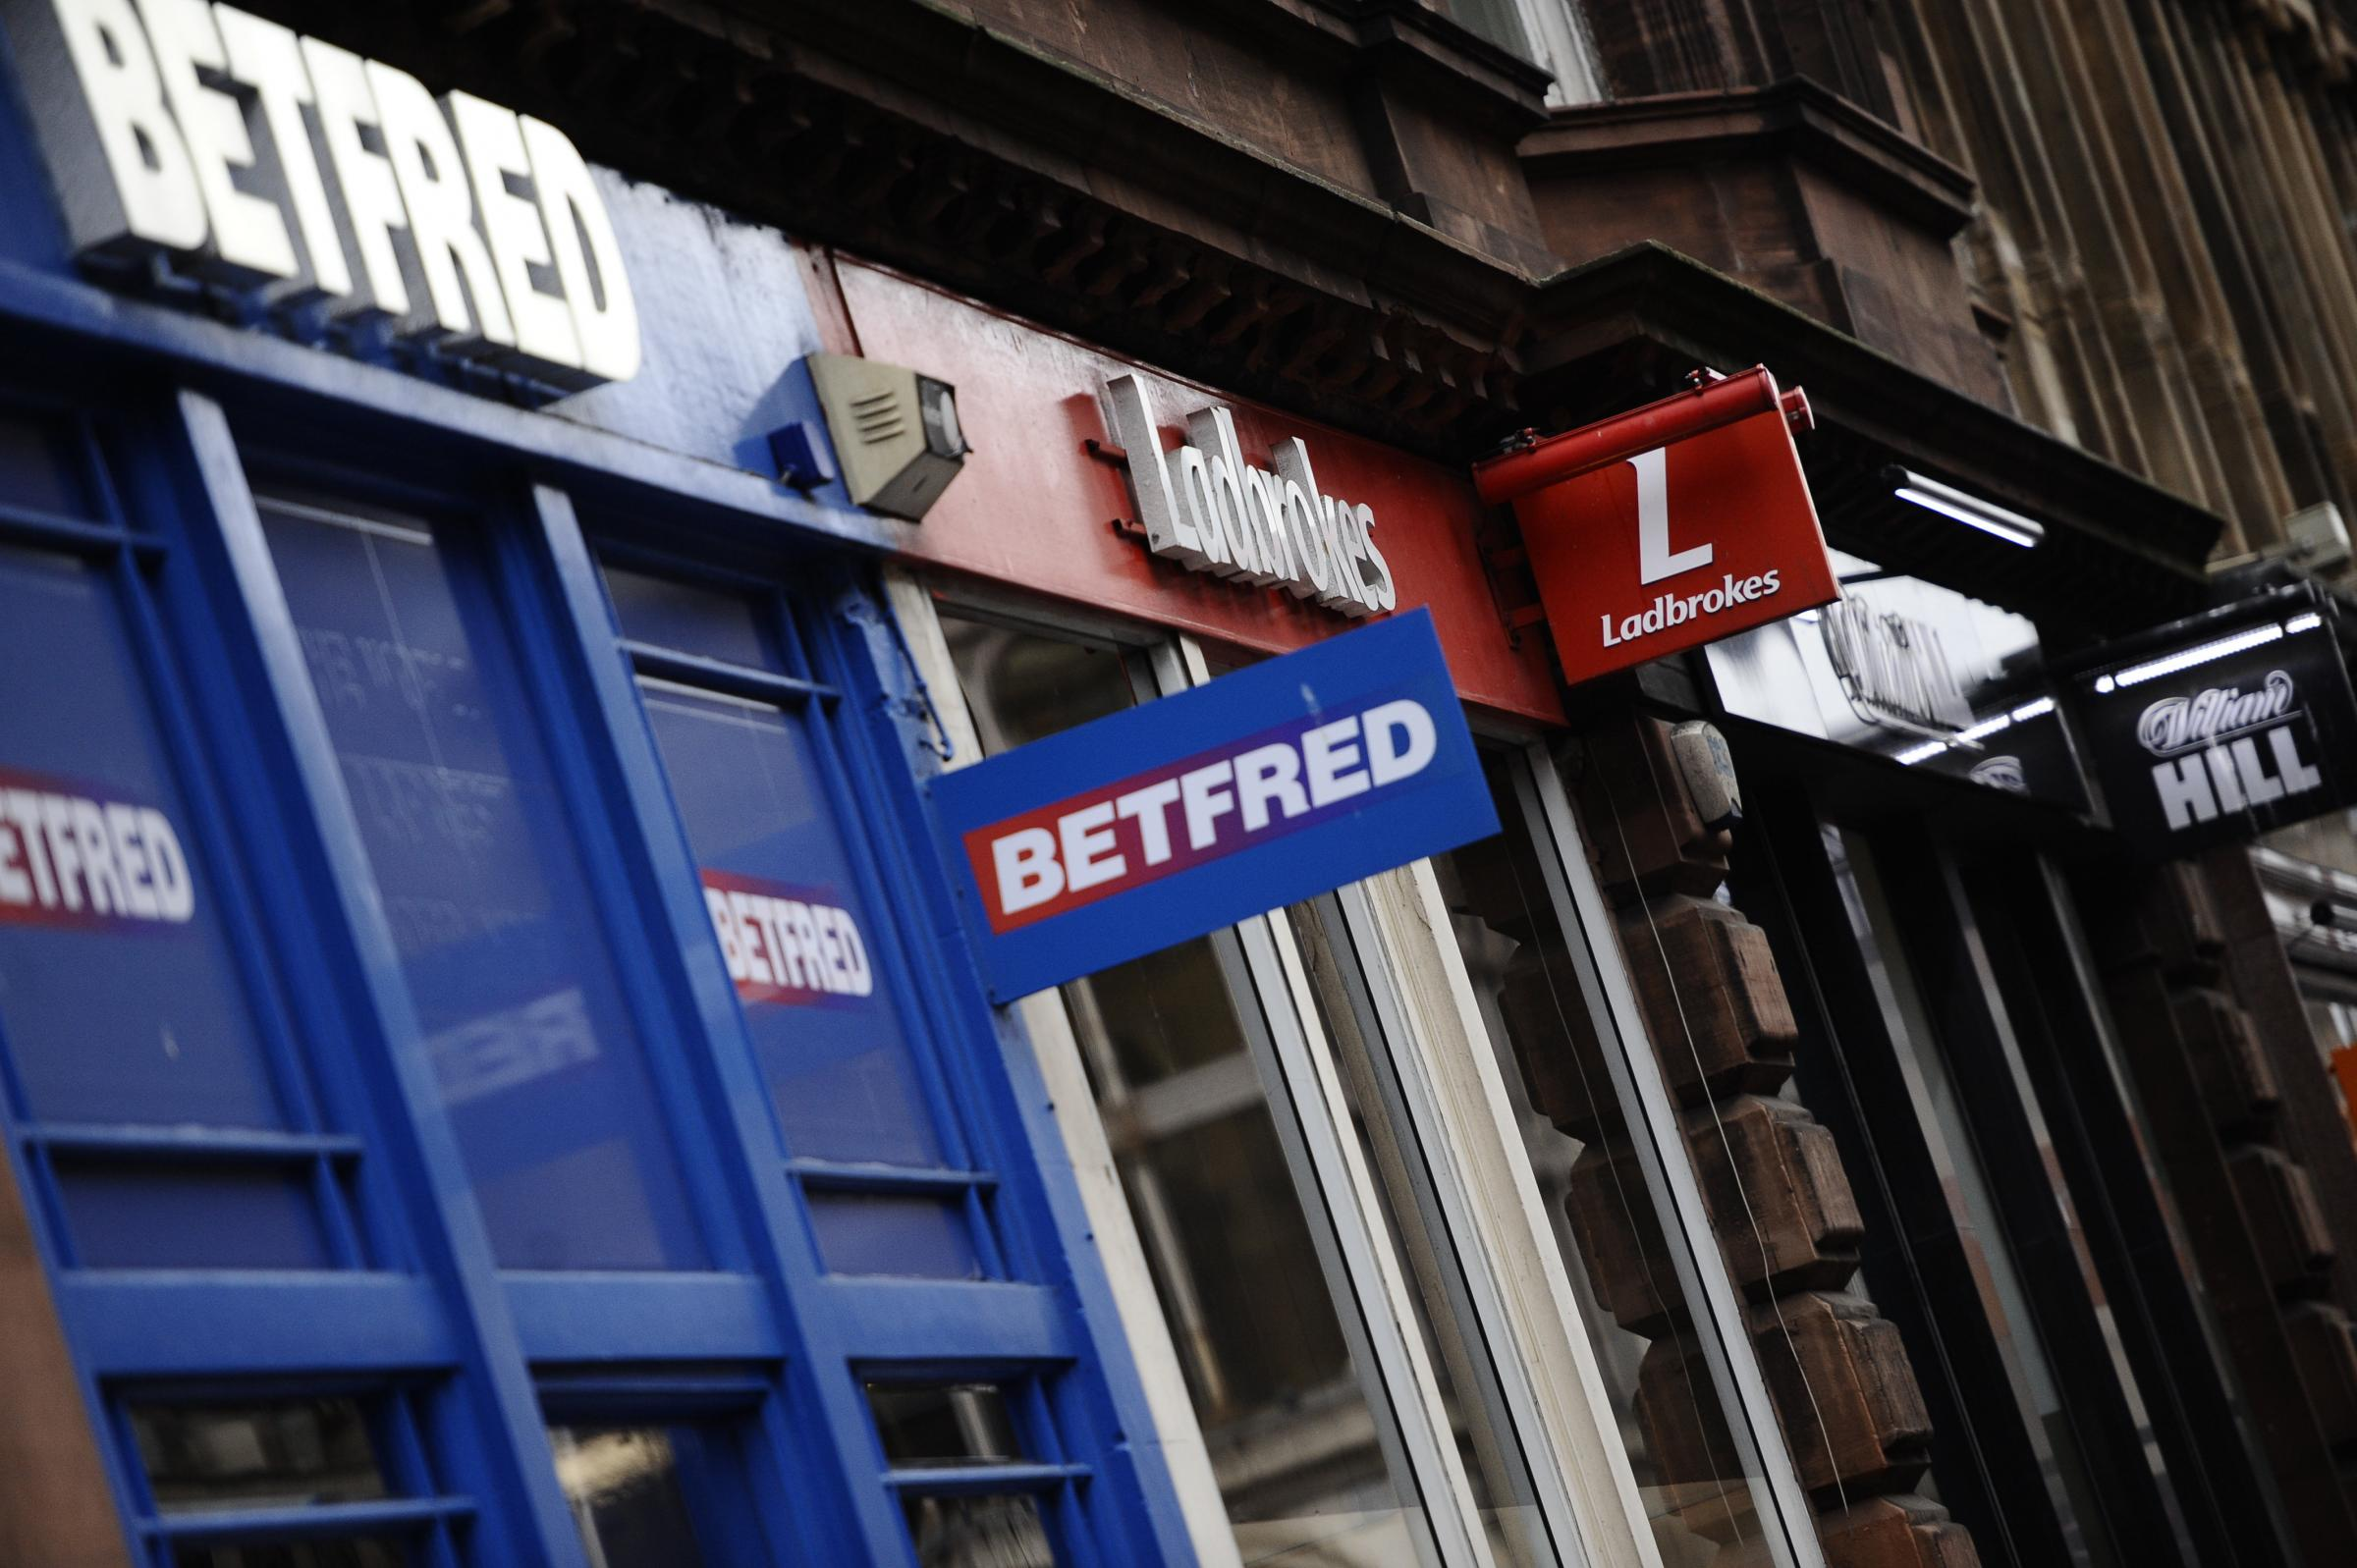 Betting assistant crack cocaine ufc 168 betting predictions for english premier